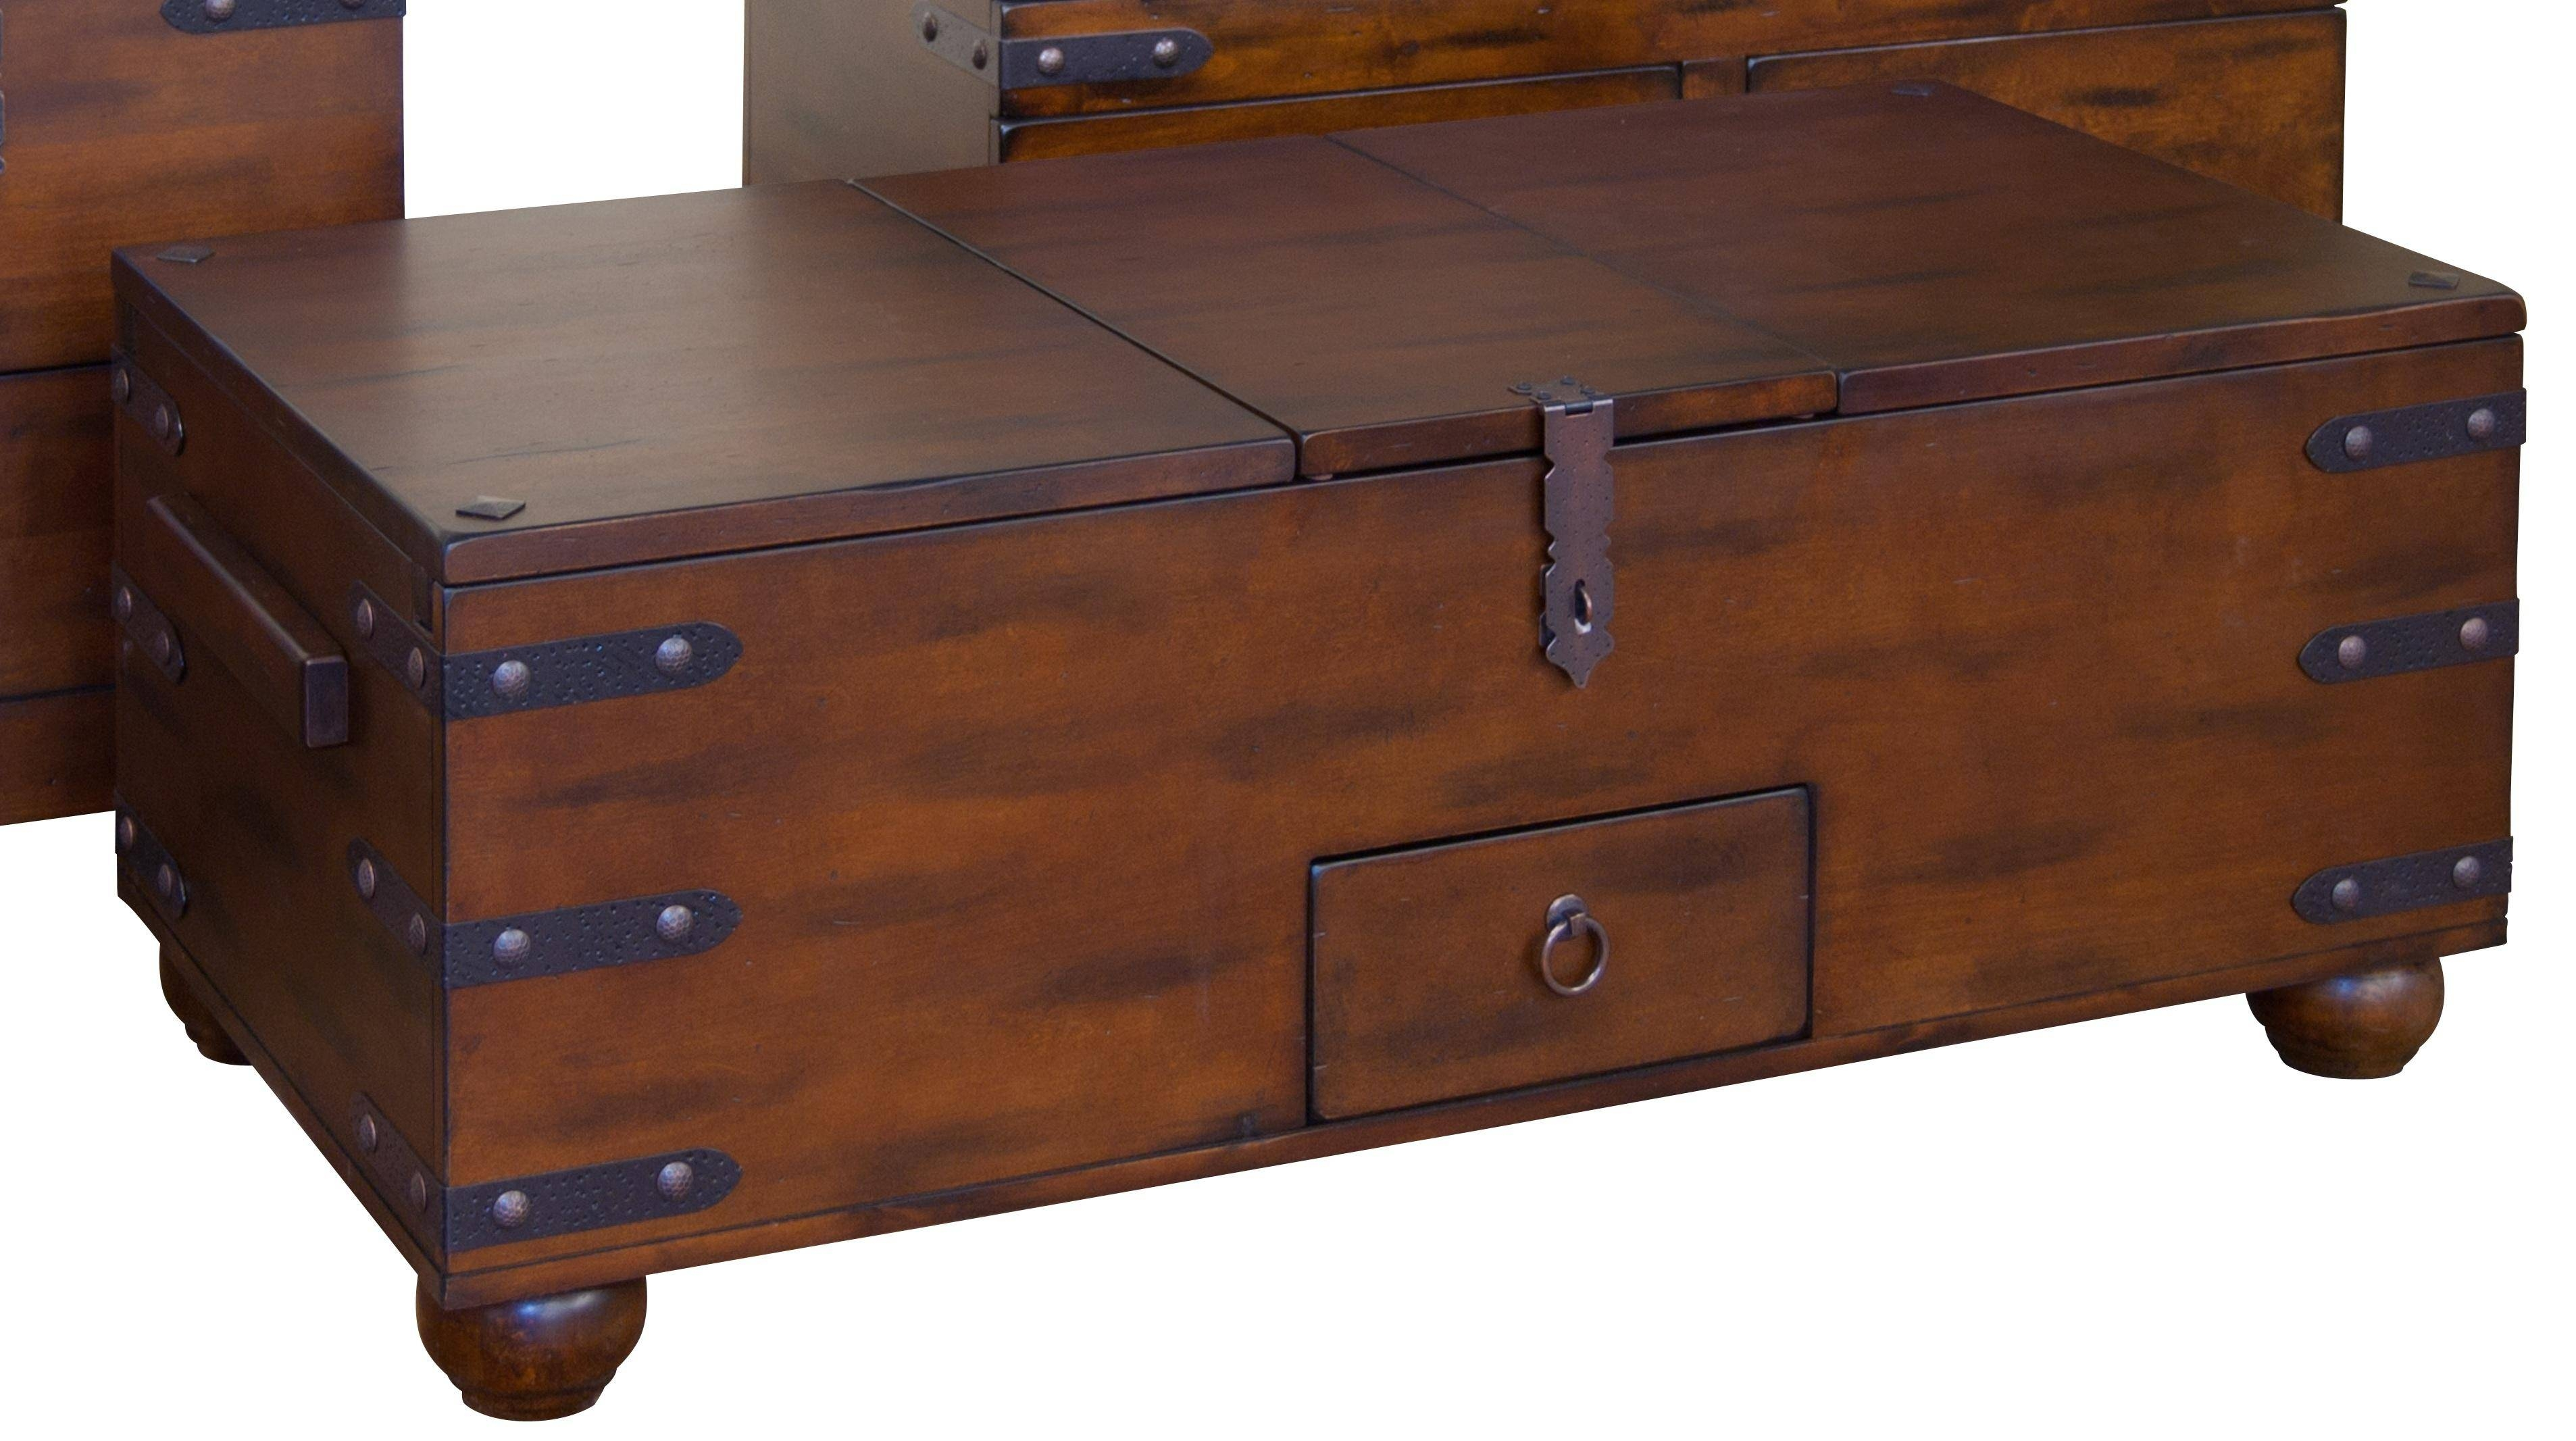 Best Trunk Coffee Table Design | Best Home Decor Inspirations within Trunk Chest Coffee Tables (Image 2 of 30)